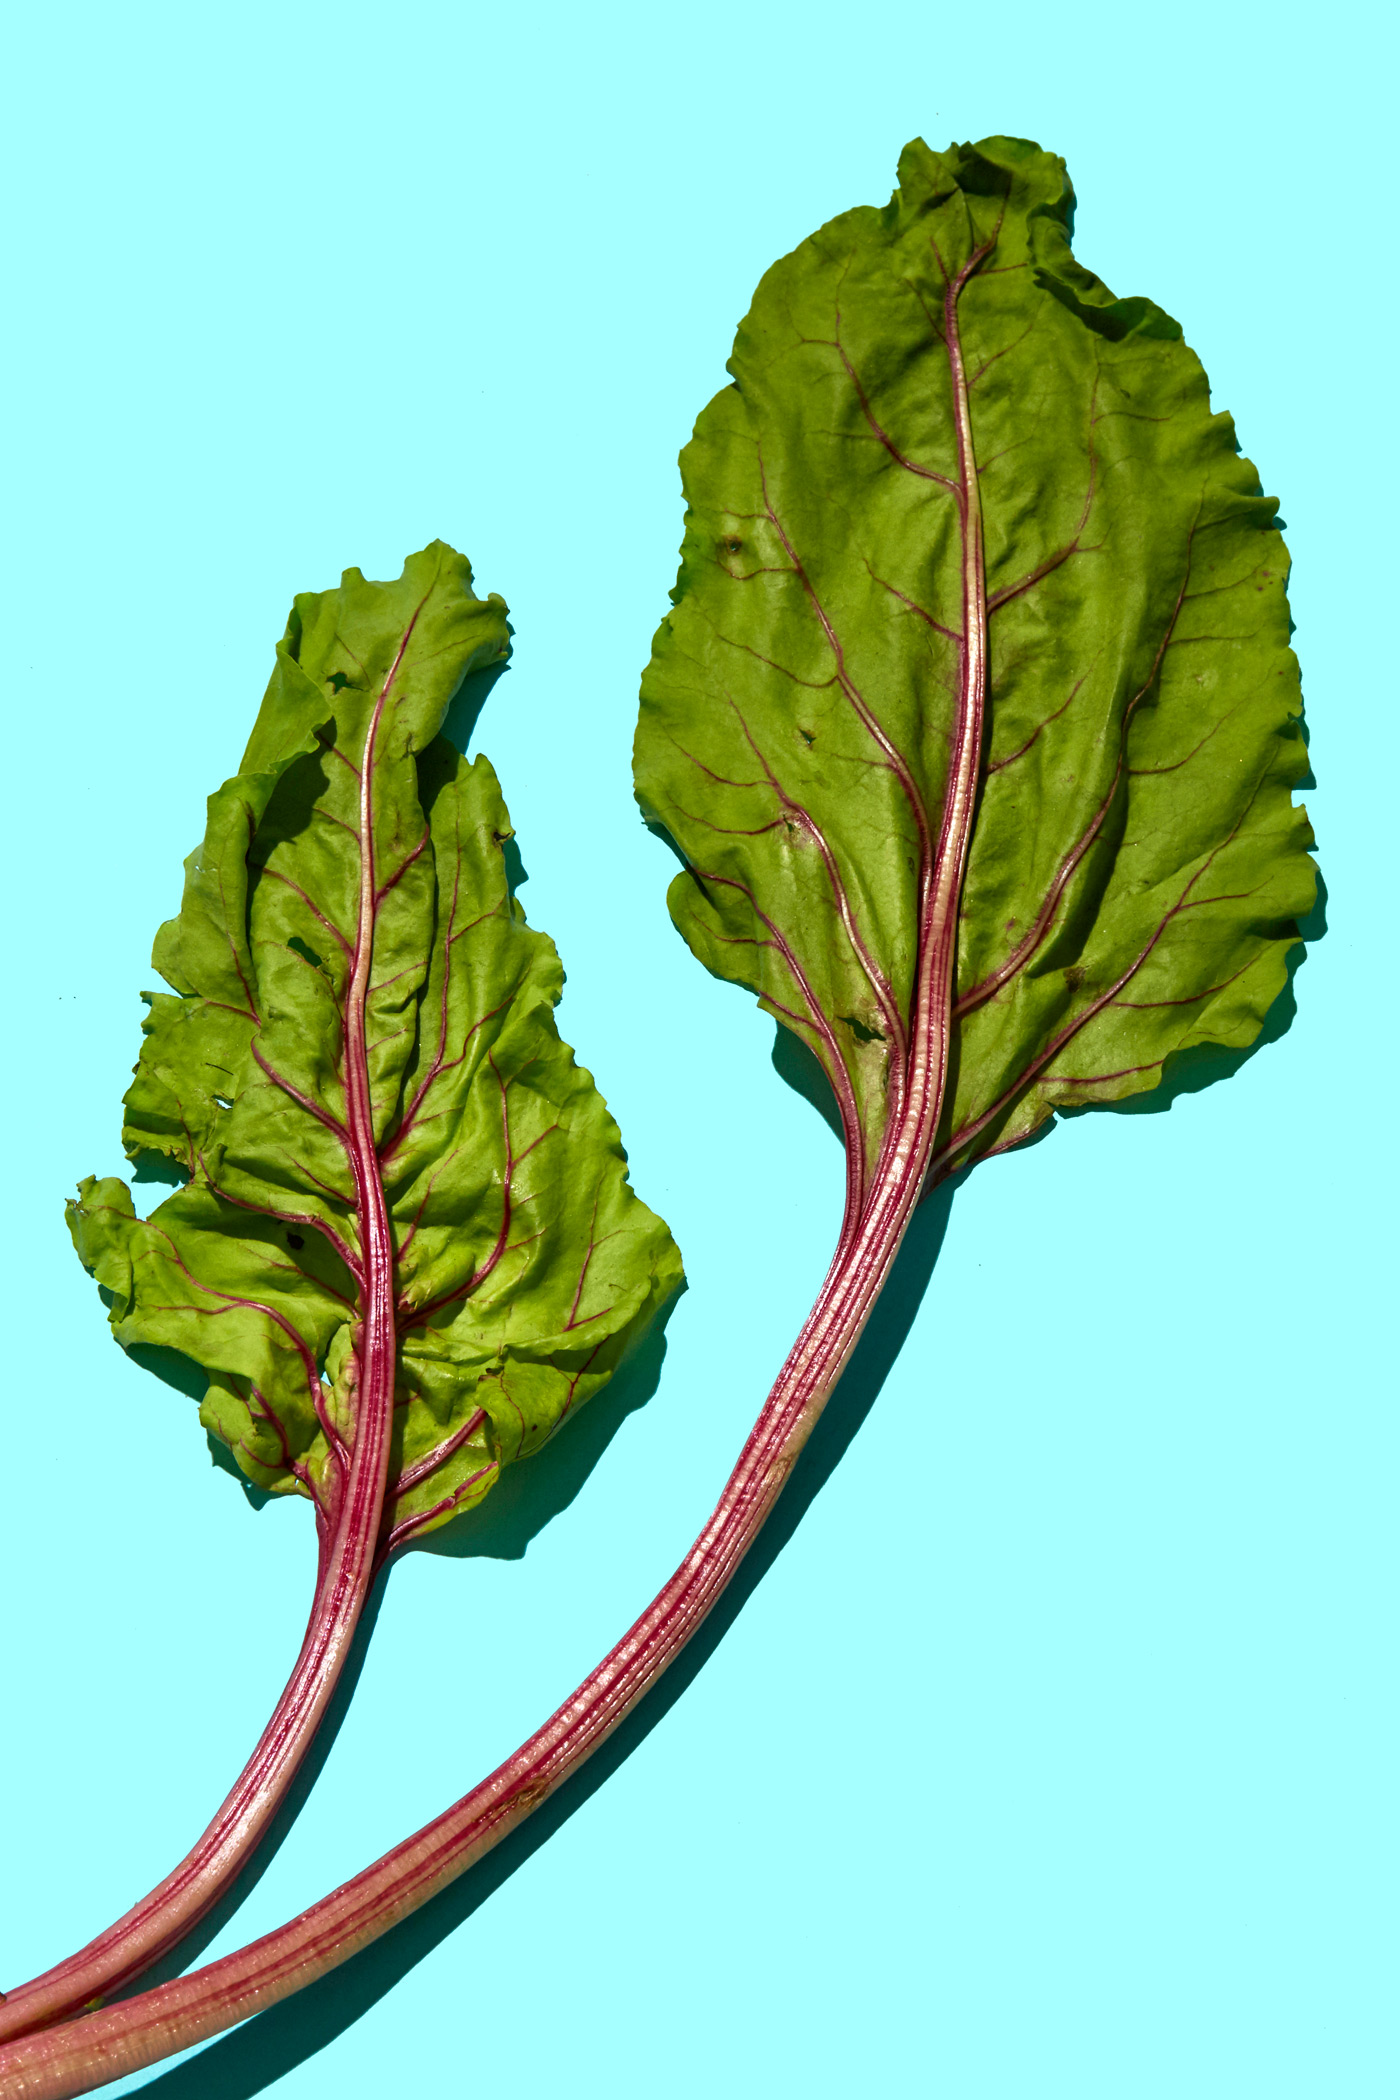 healthiest foods, health food, diet, nutrition, time.com stock, beet greens